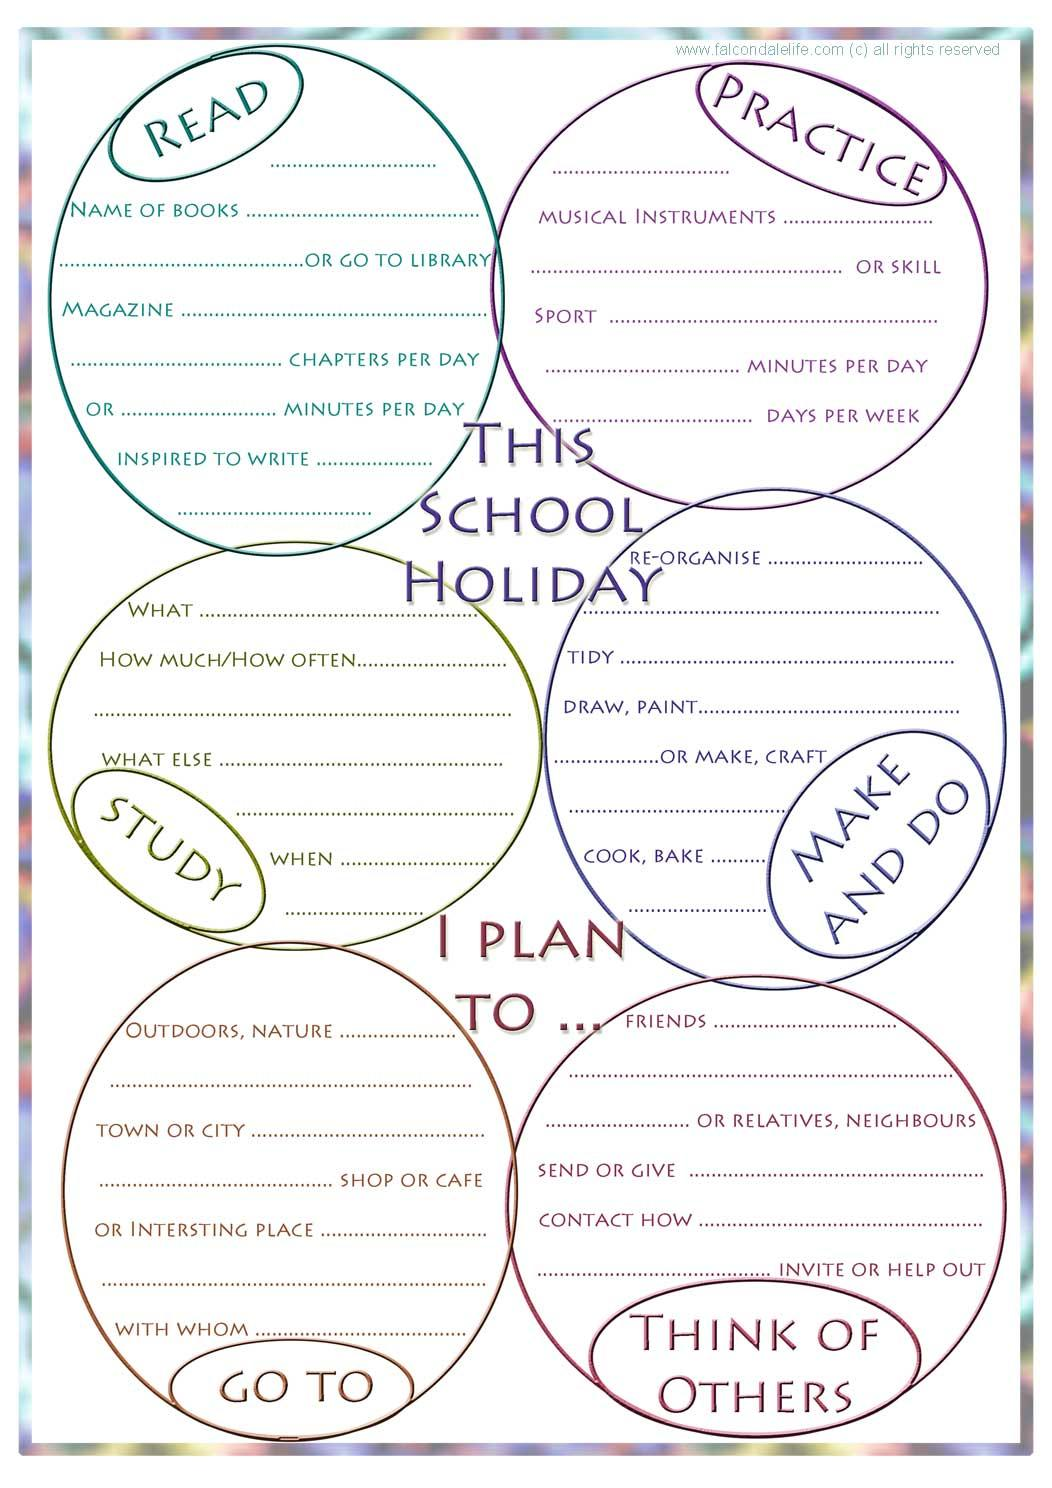 school holiday planner free printable from http://falcondalelife.com